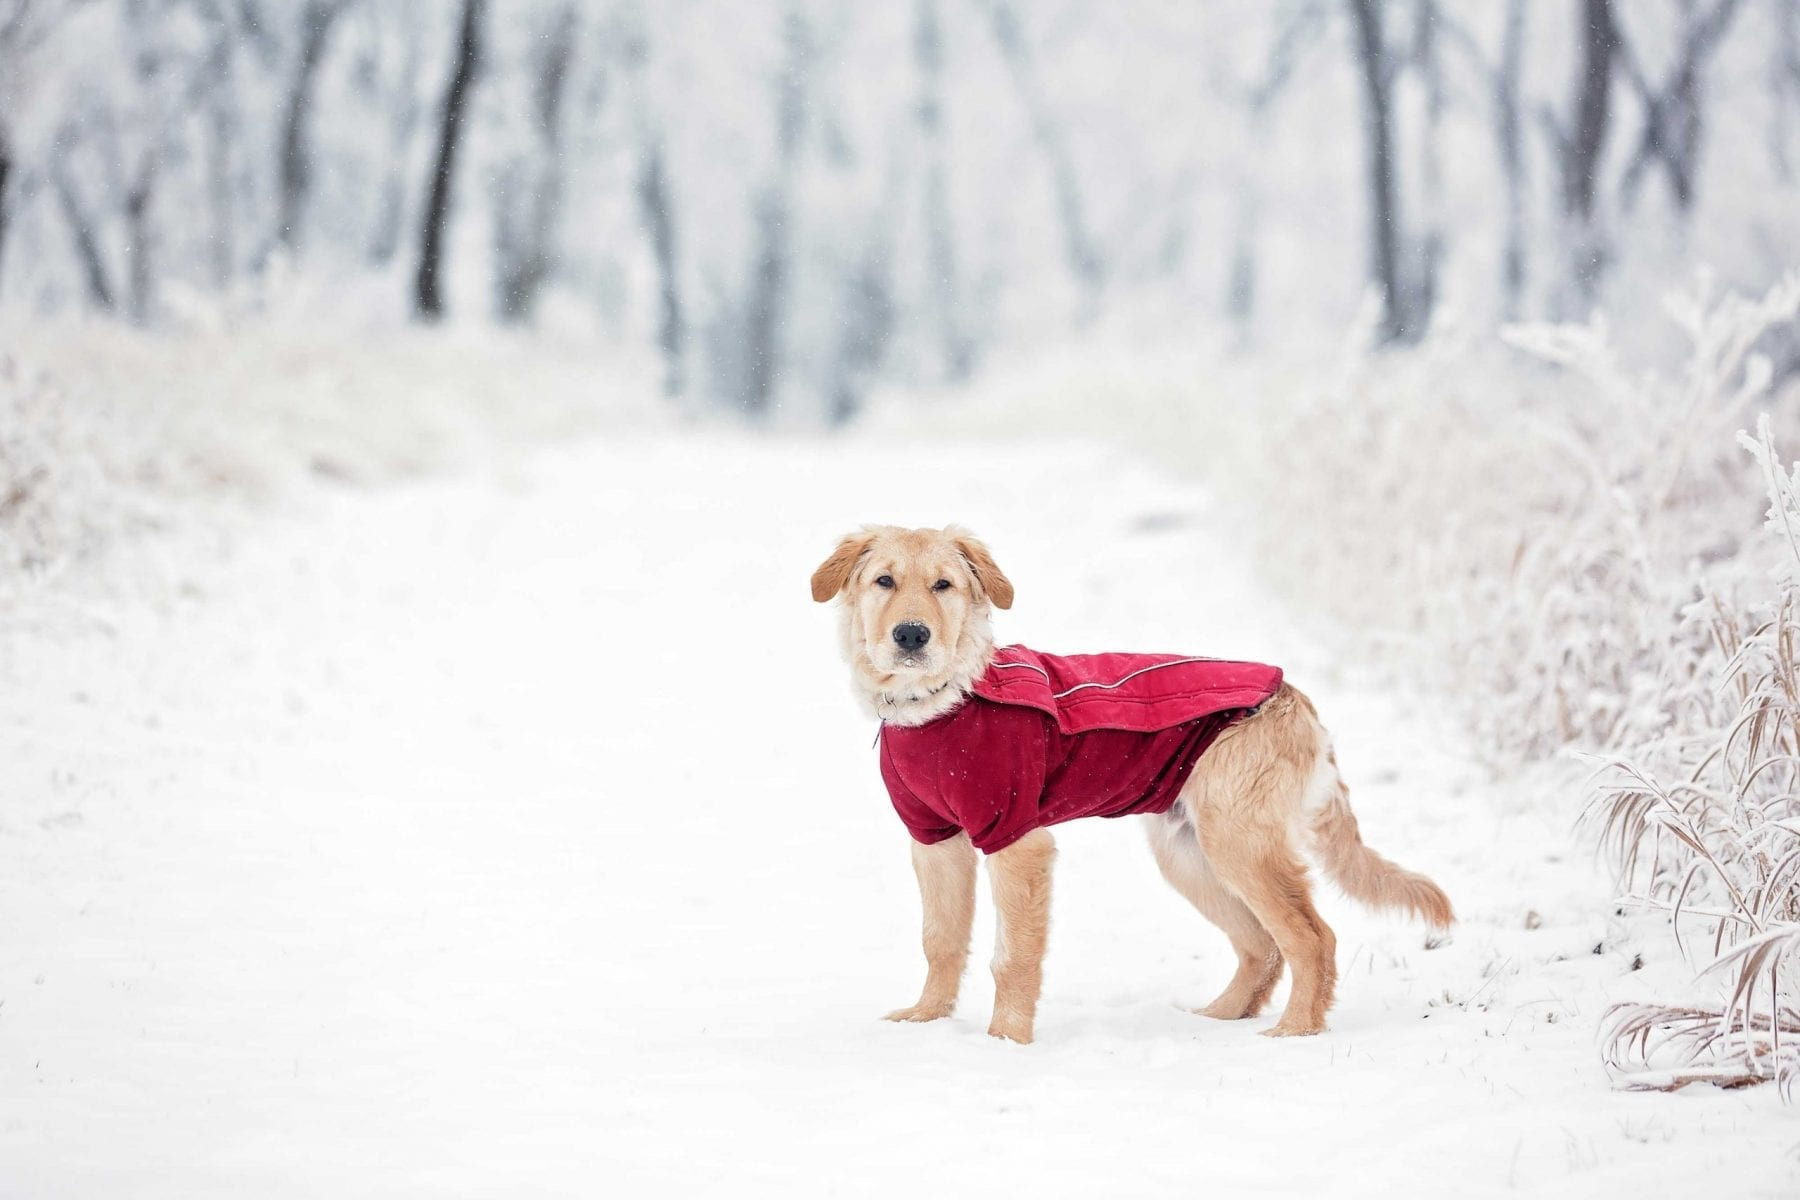 Dog wearing jacket to protect against winter cold weather